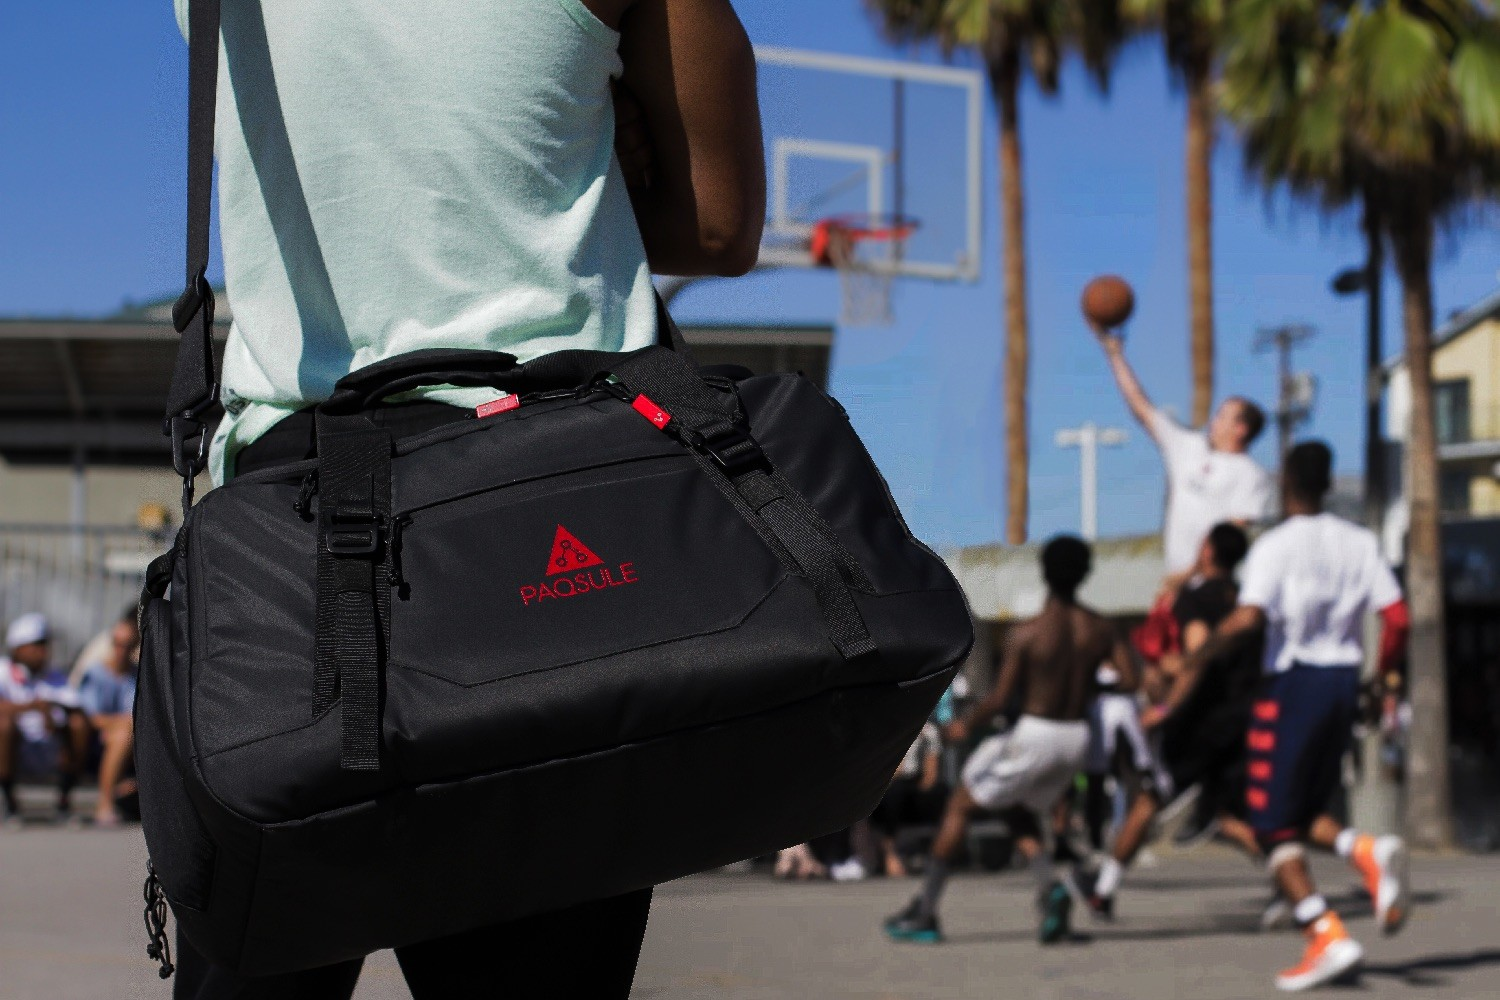 Smart gym bag promises to clean itself and everything inside it